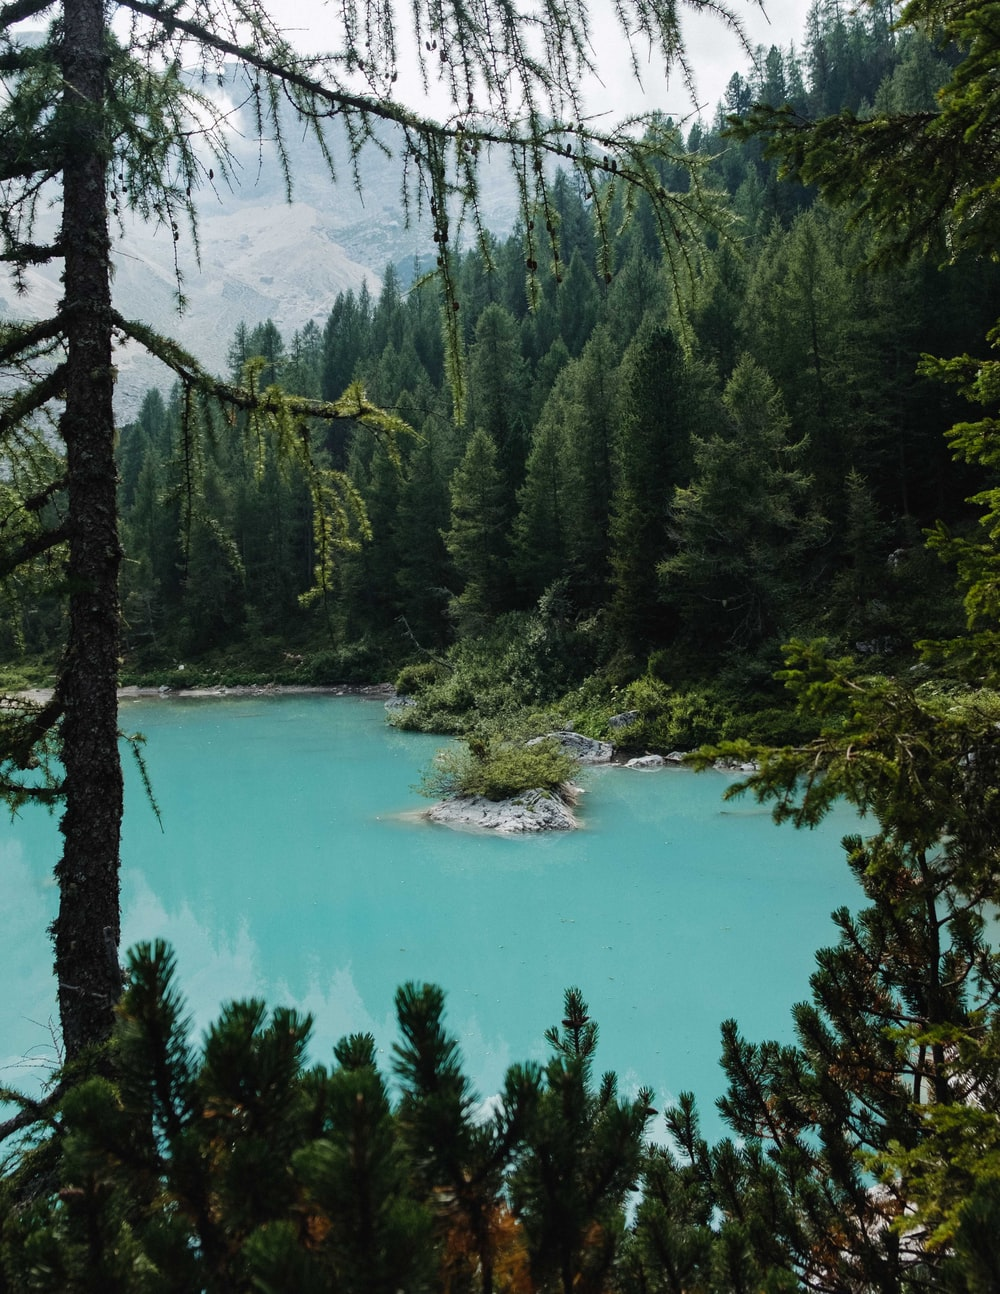 green trees and body of water